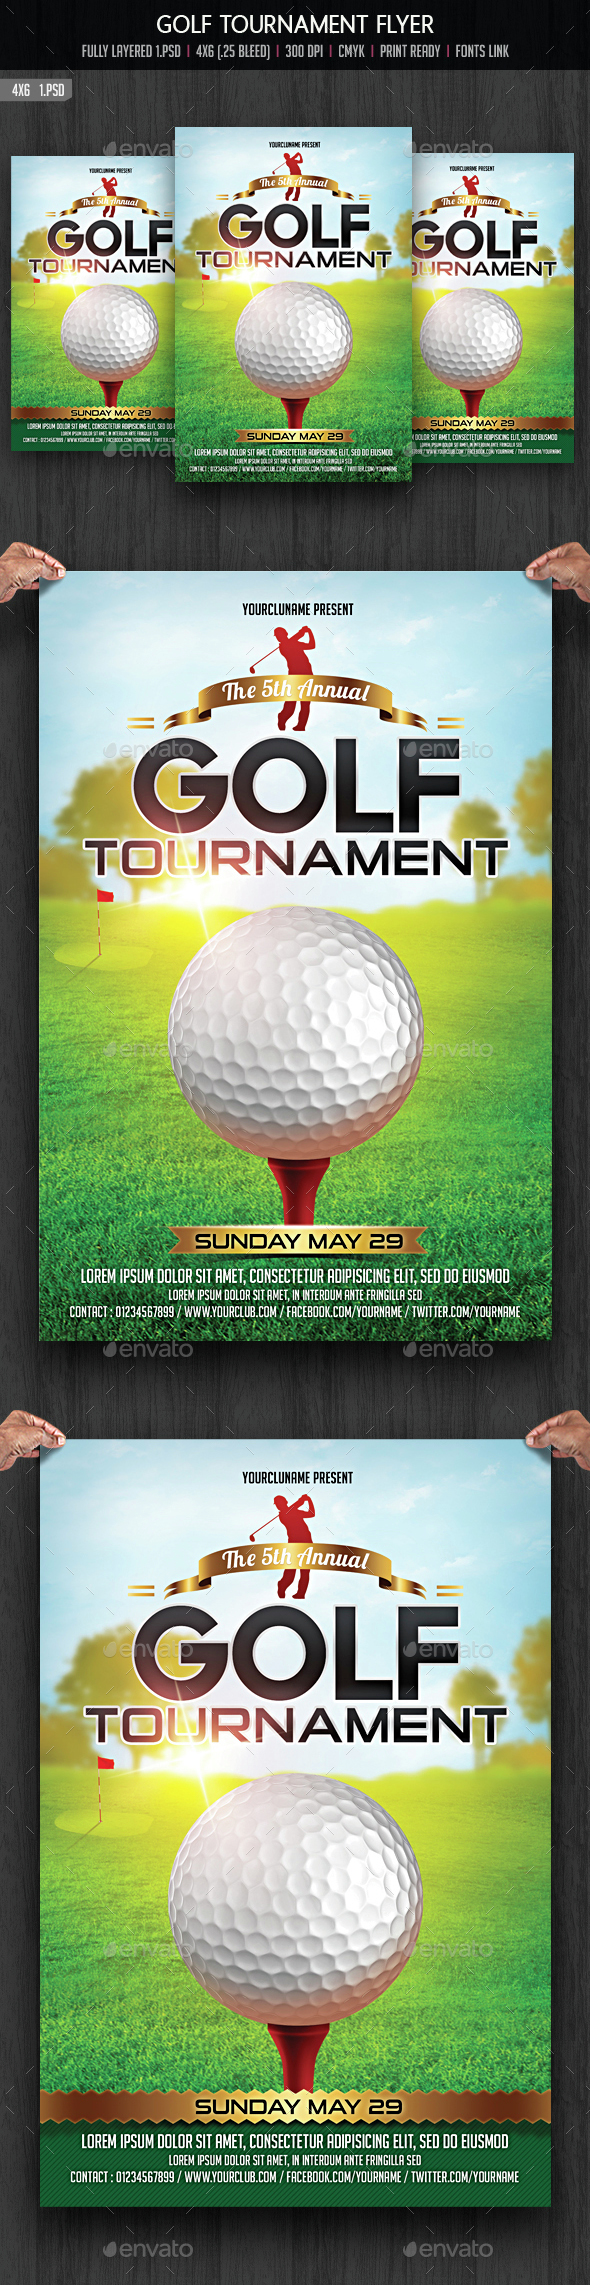 golf tournament program template - golf tournament flyer by creativeartx graphicriver